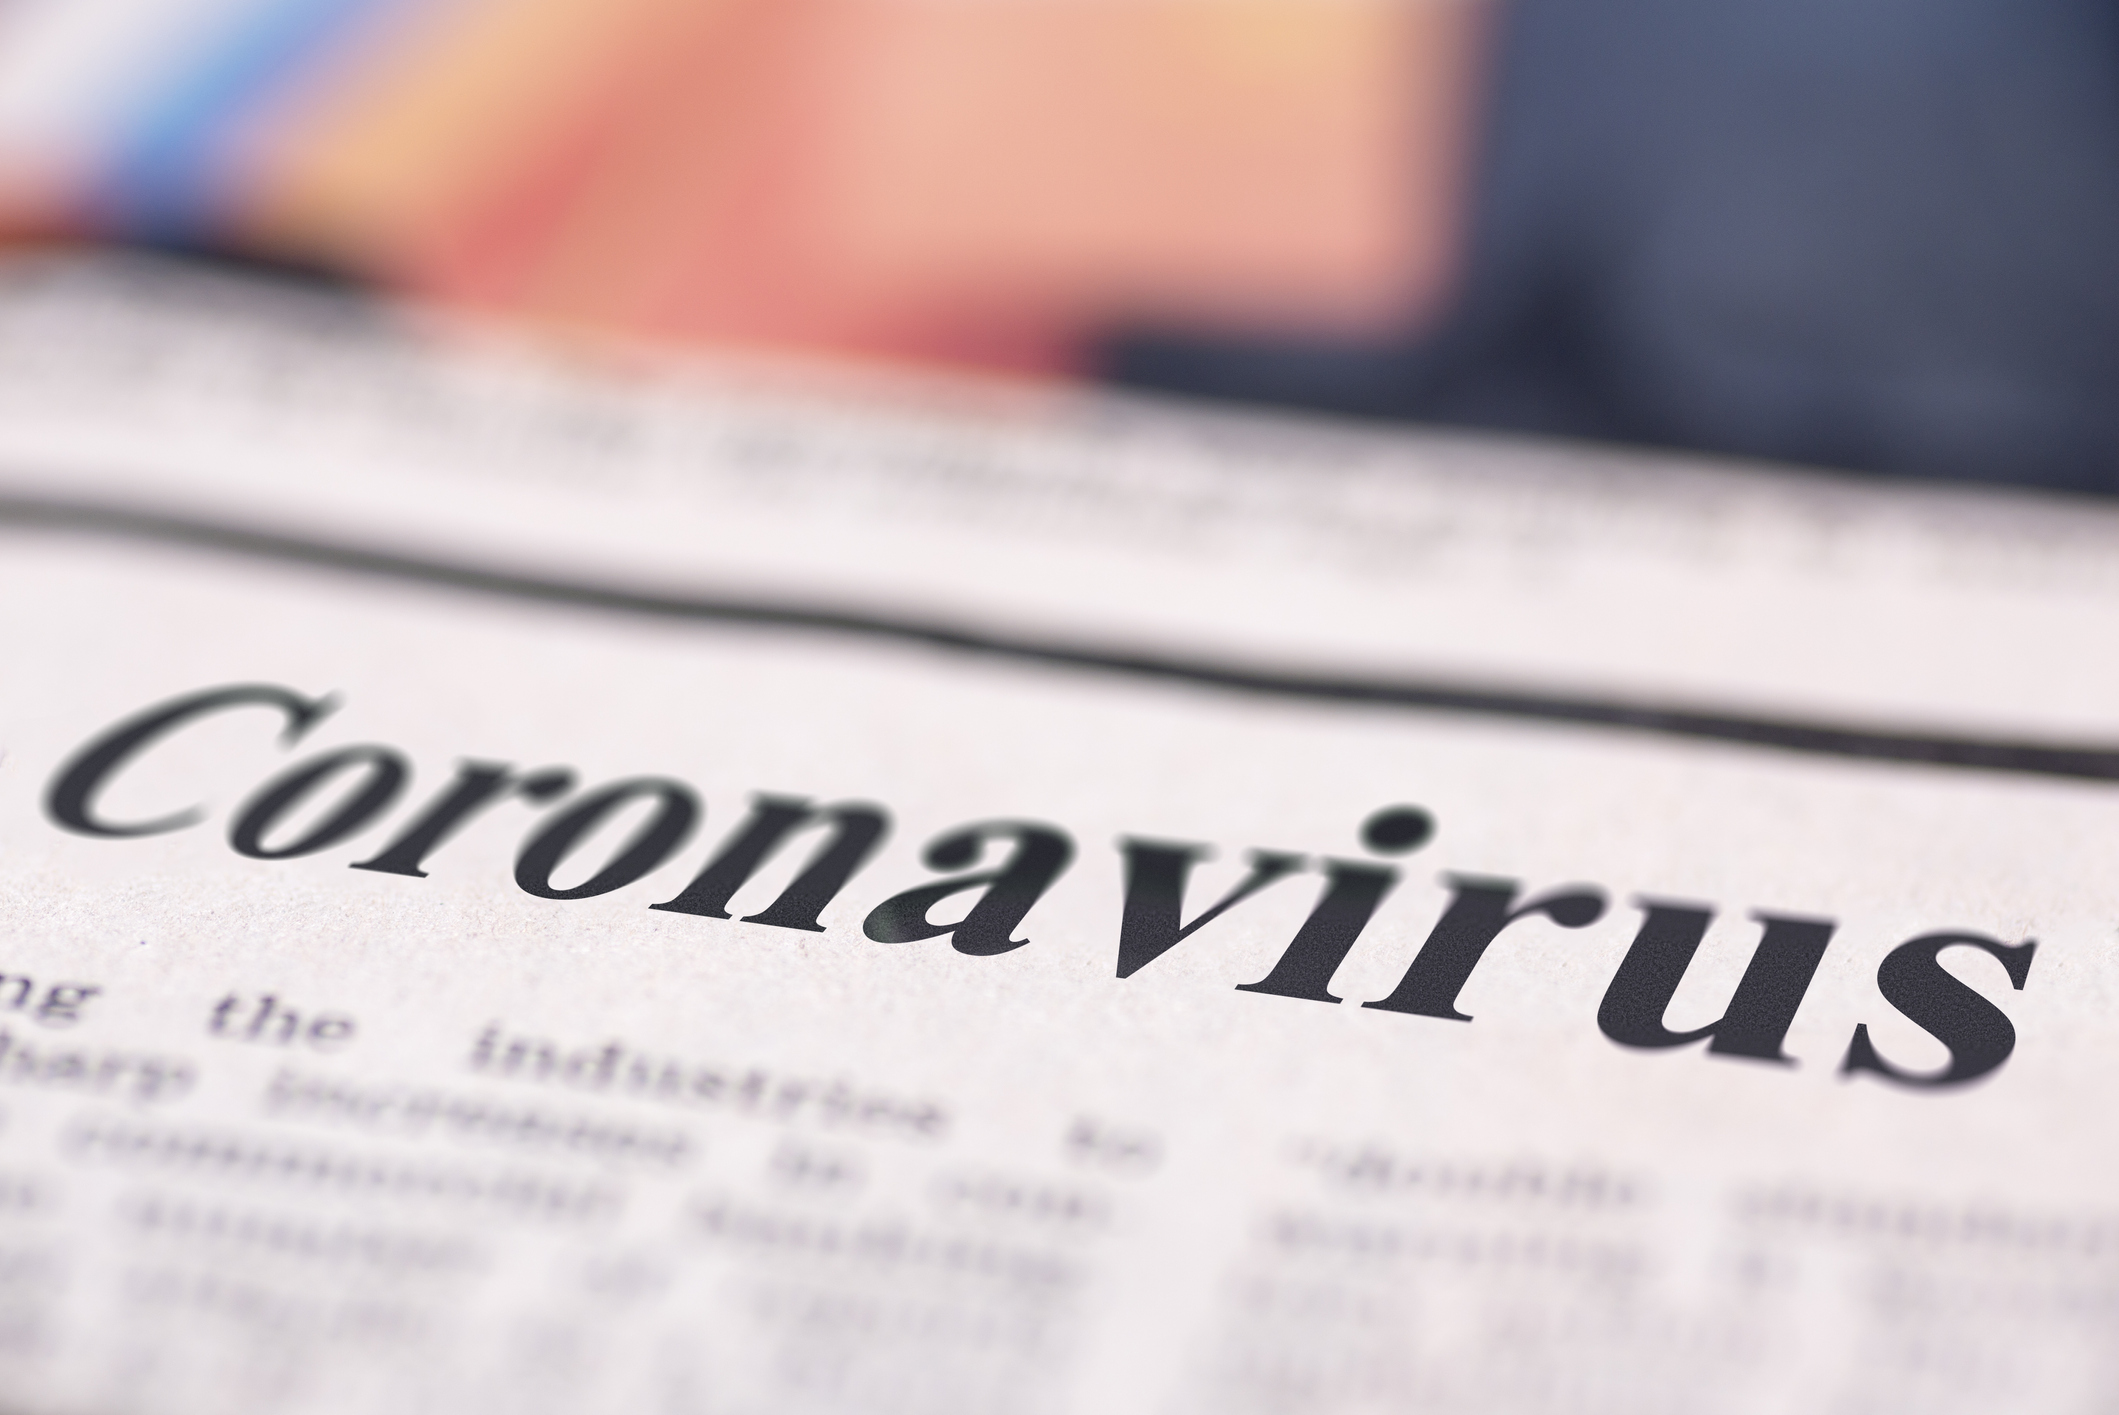 Coronavirus written newspaper